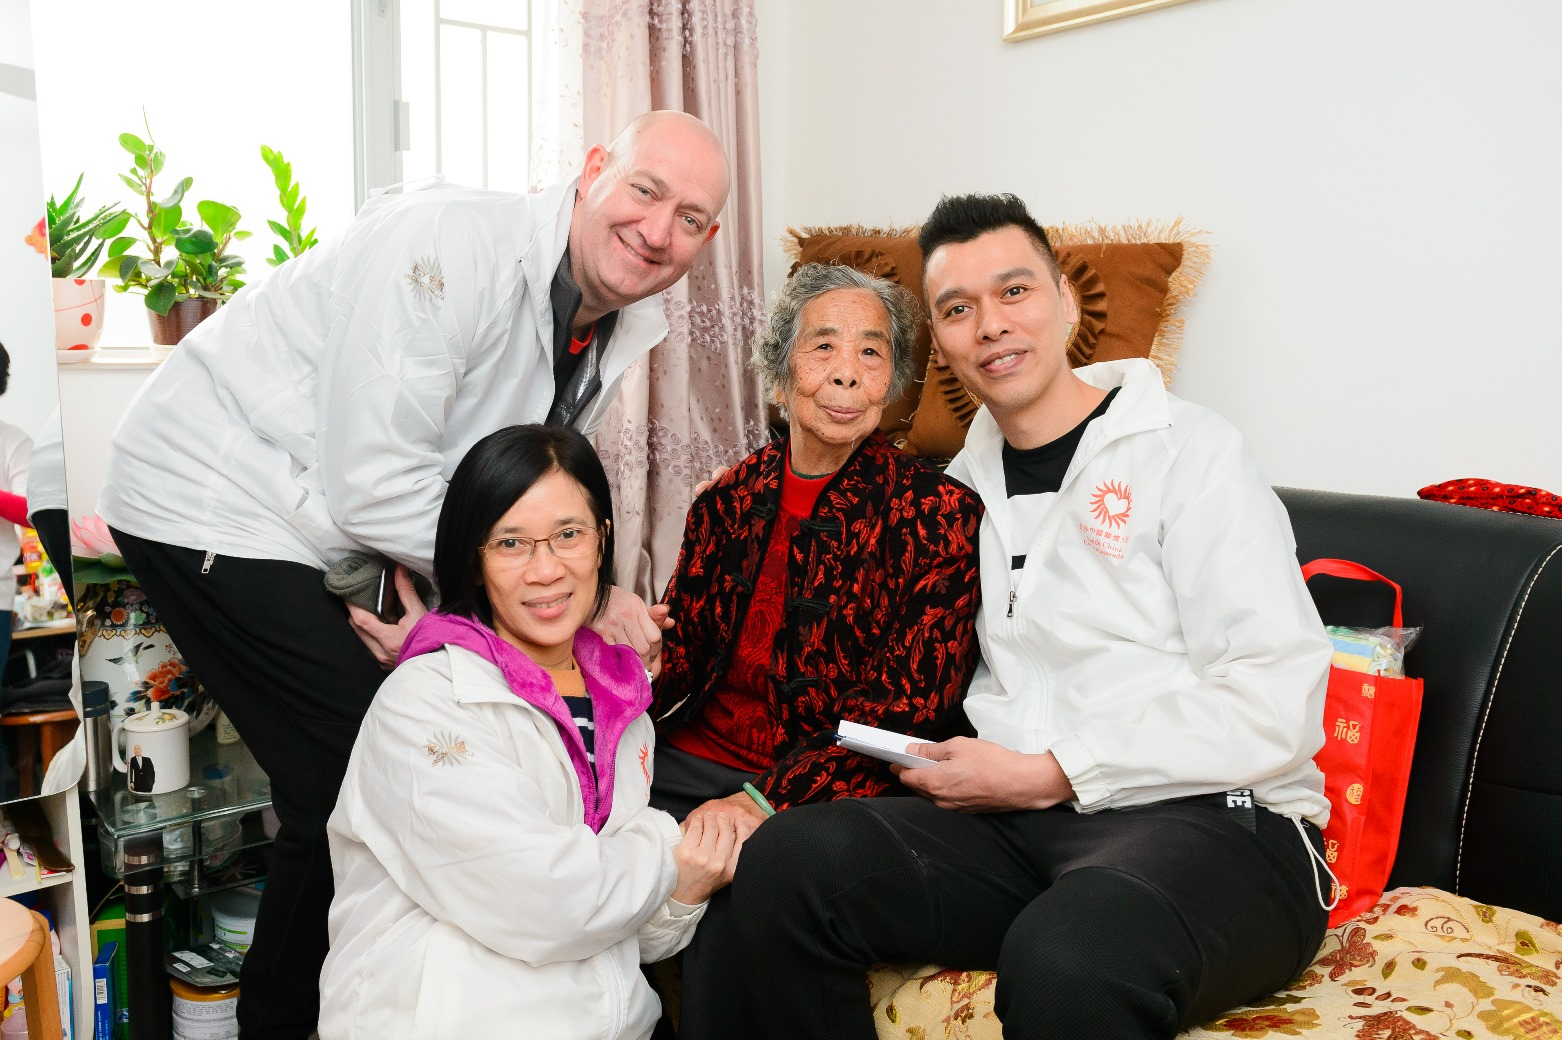 Sands China Does Annual Spring Cleaning with Macao Elderly